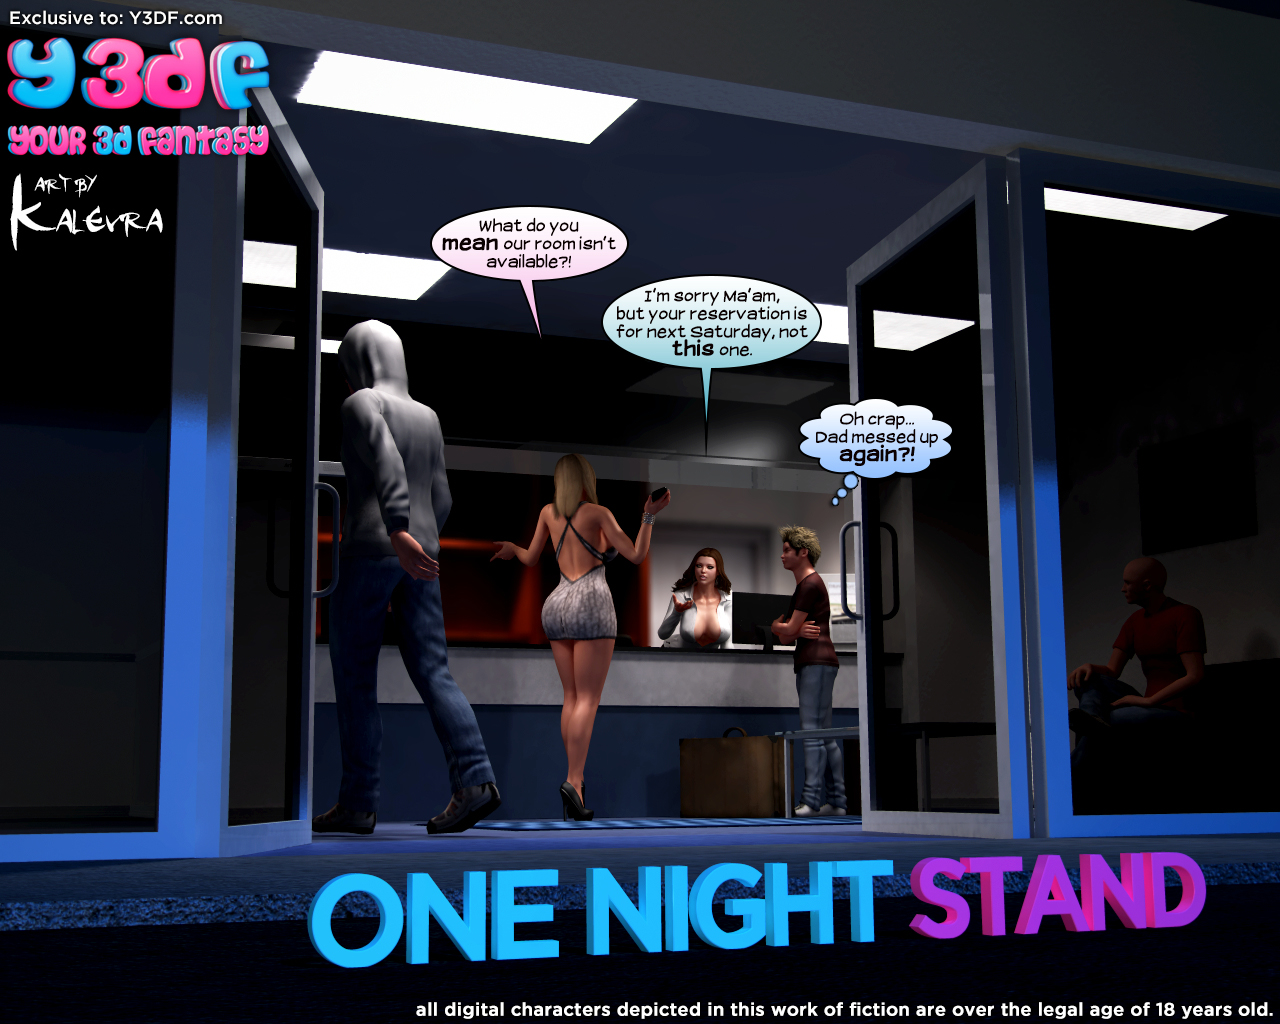 one night stands website bewertung